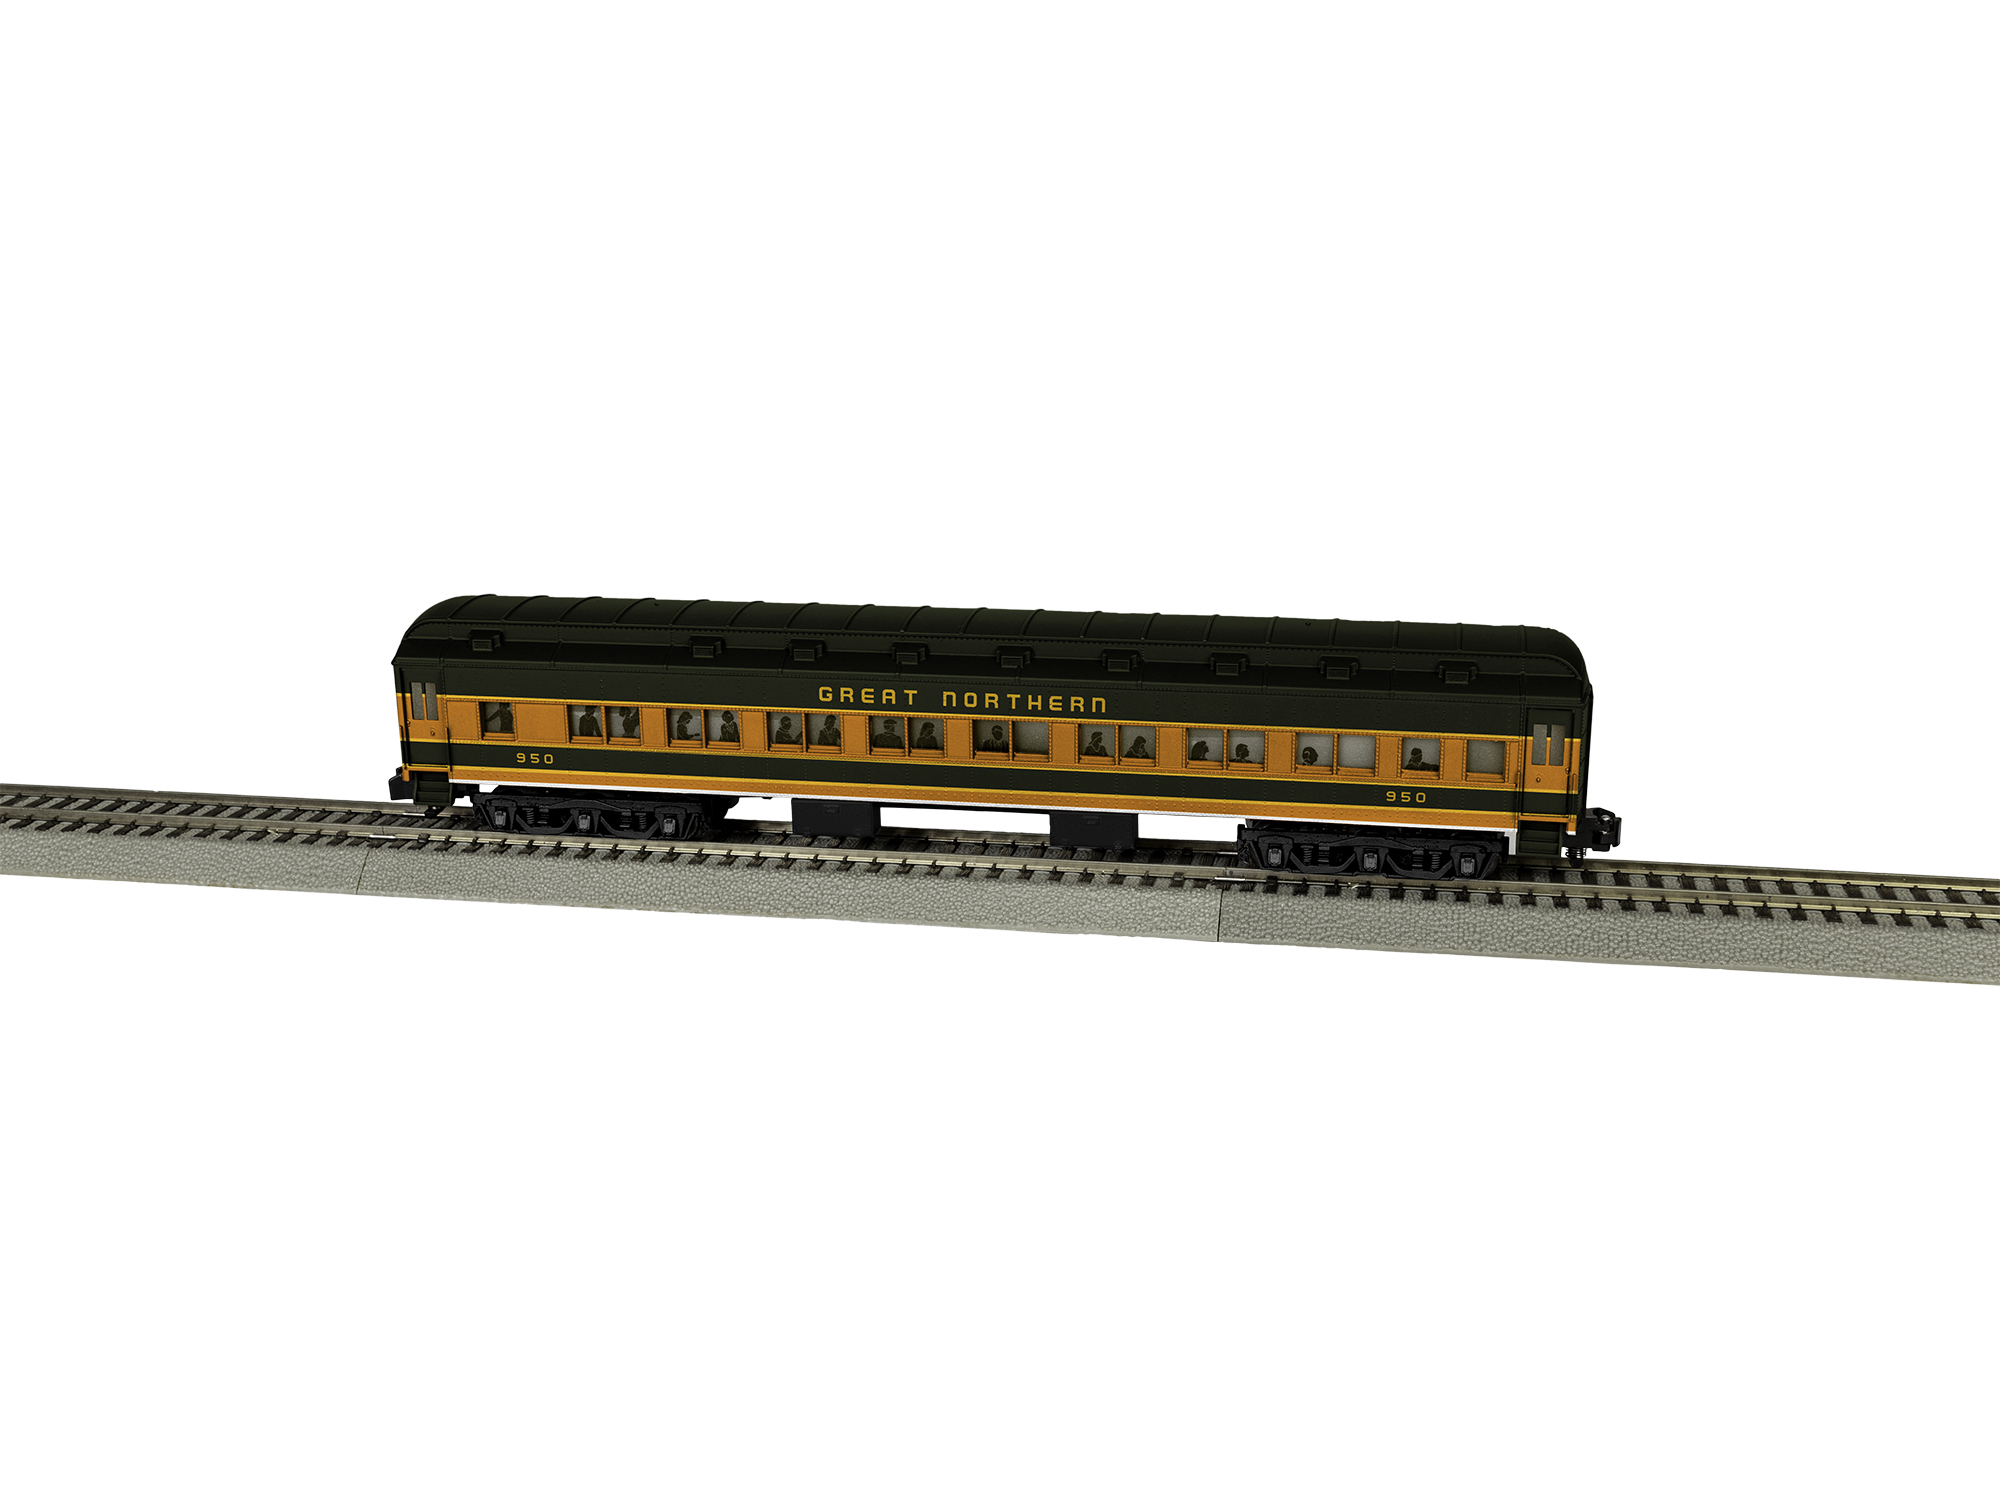 Lionel 2019311 S Great Northern GN Heavyweights Coach #950